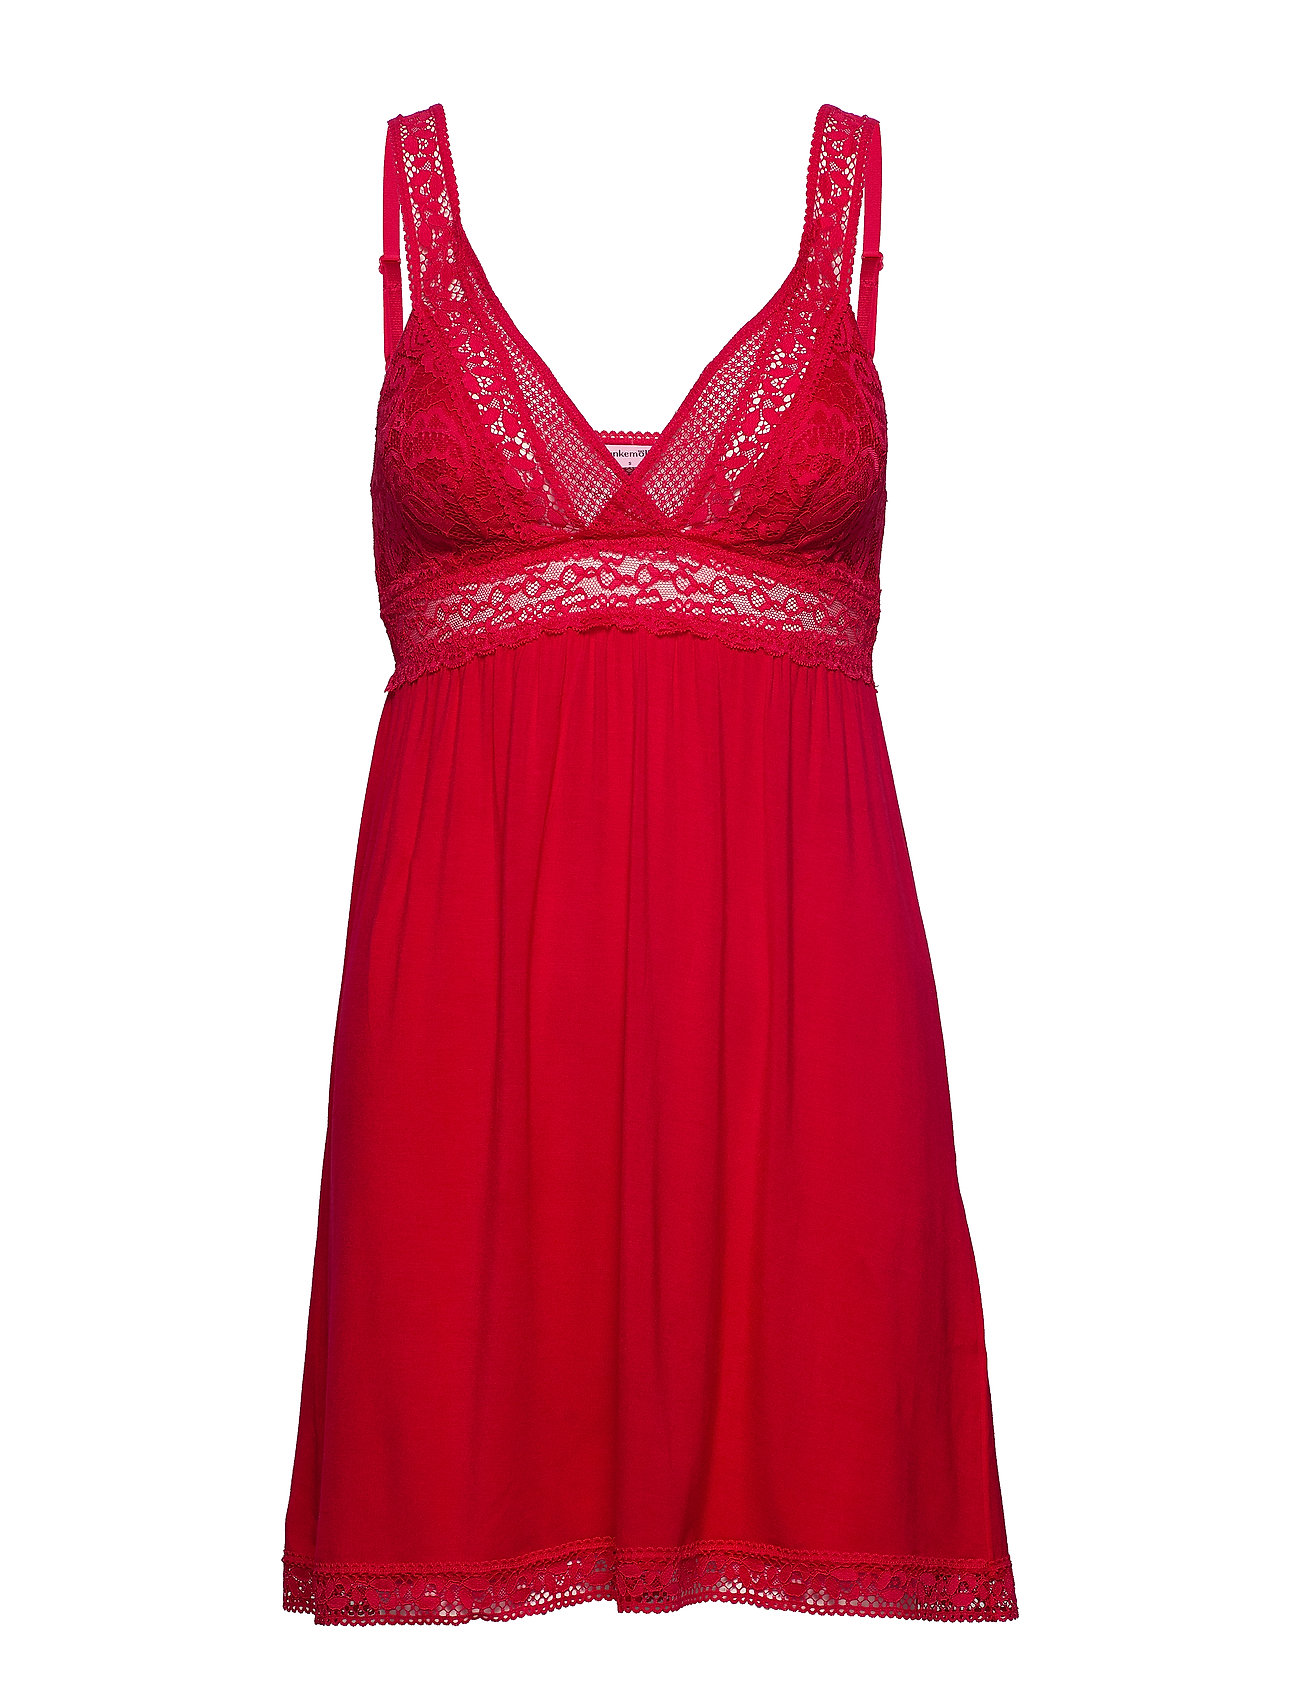 Hunkemöller SD Jersey Graphic Lace - TANGO RED